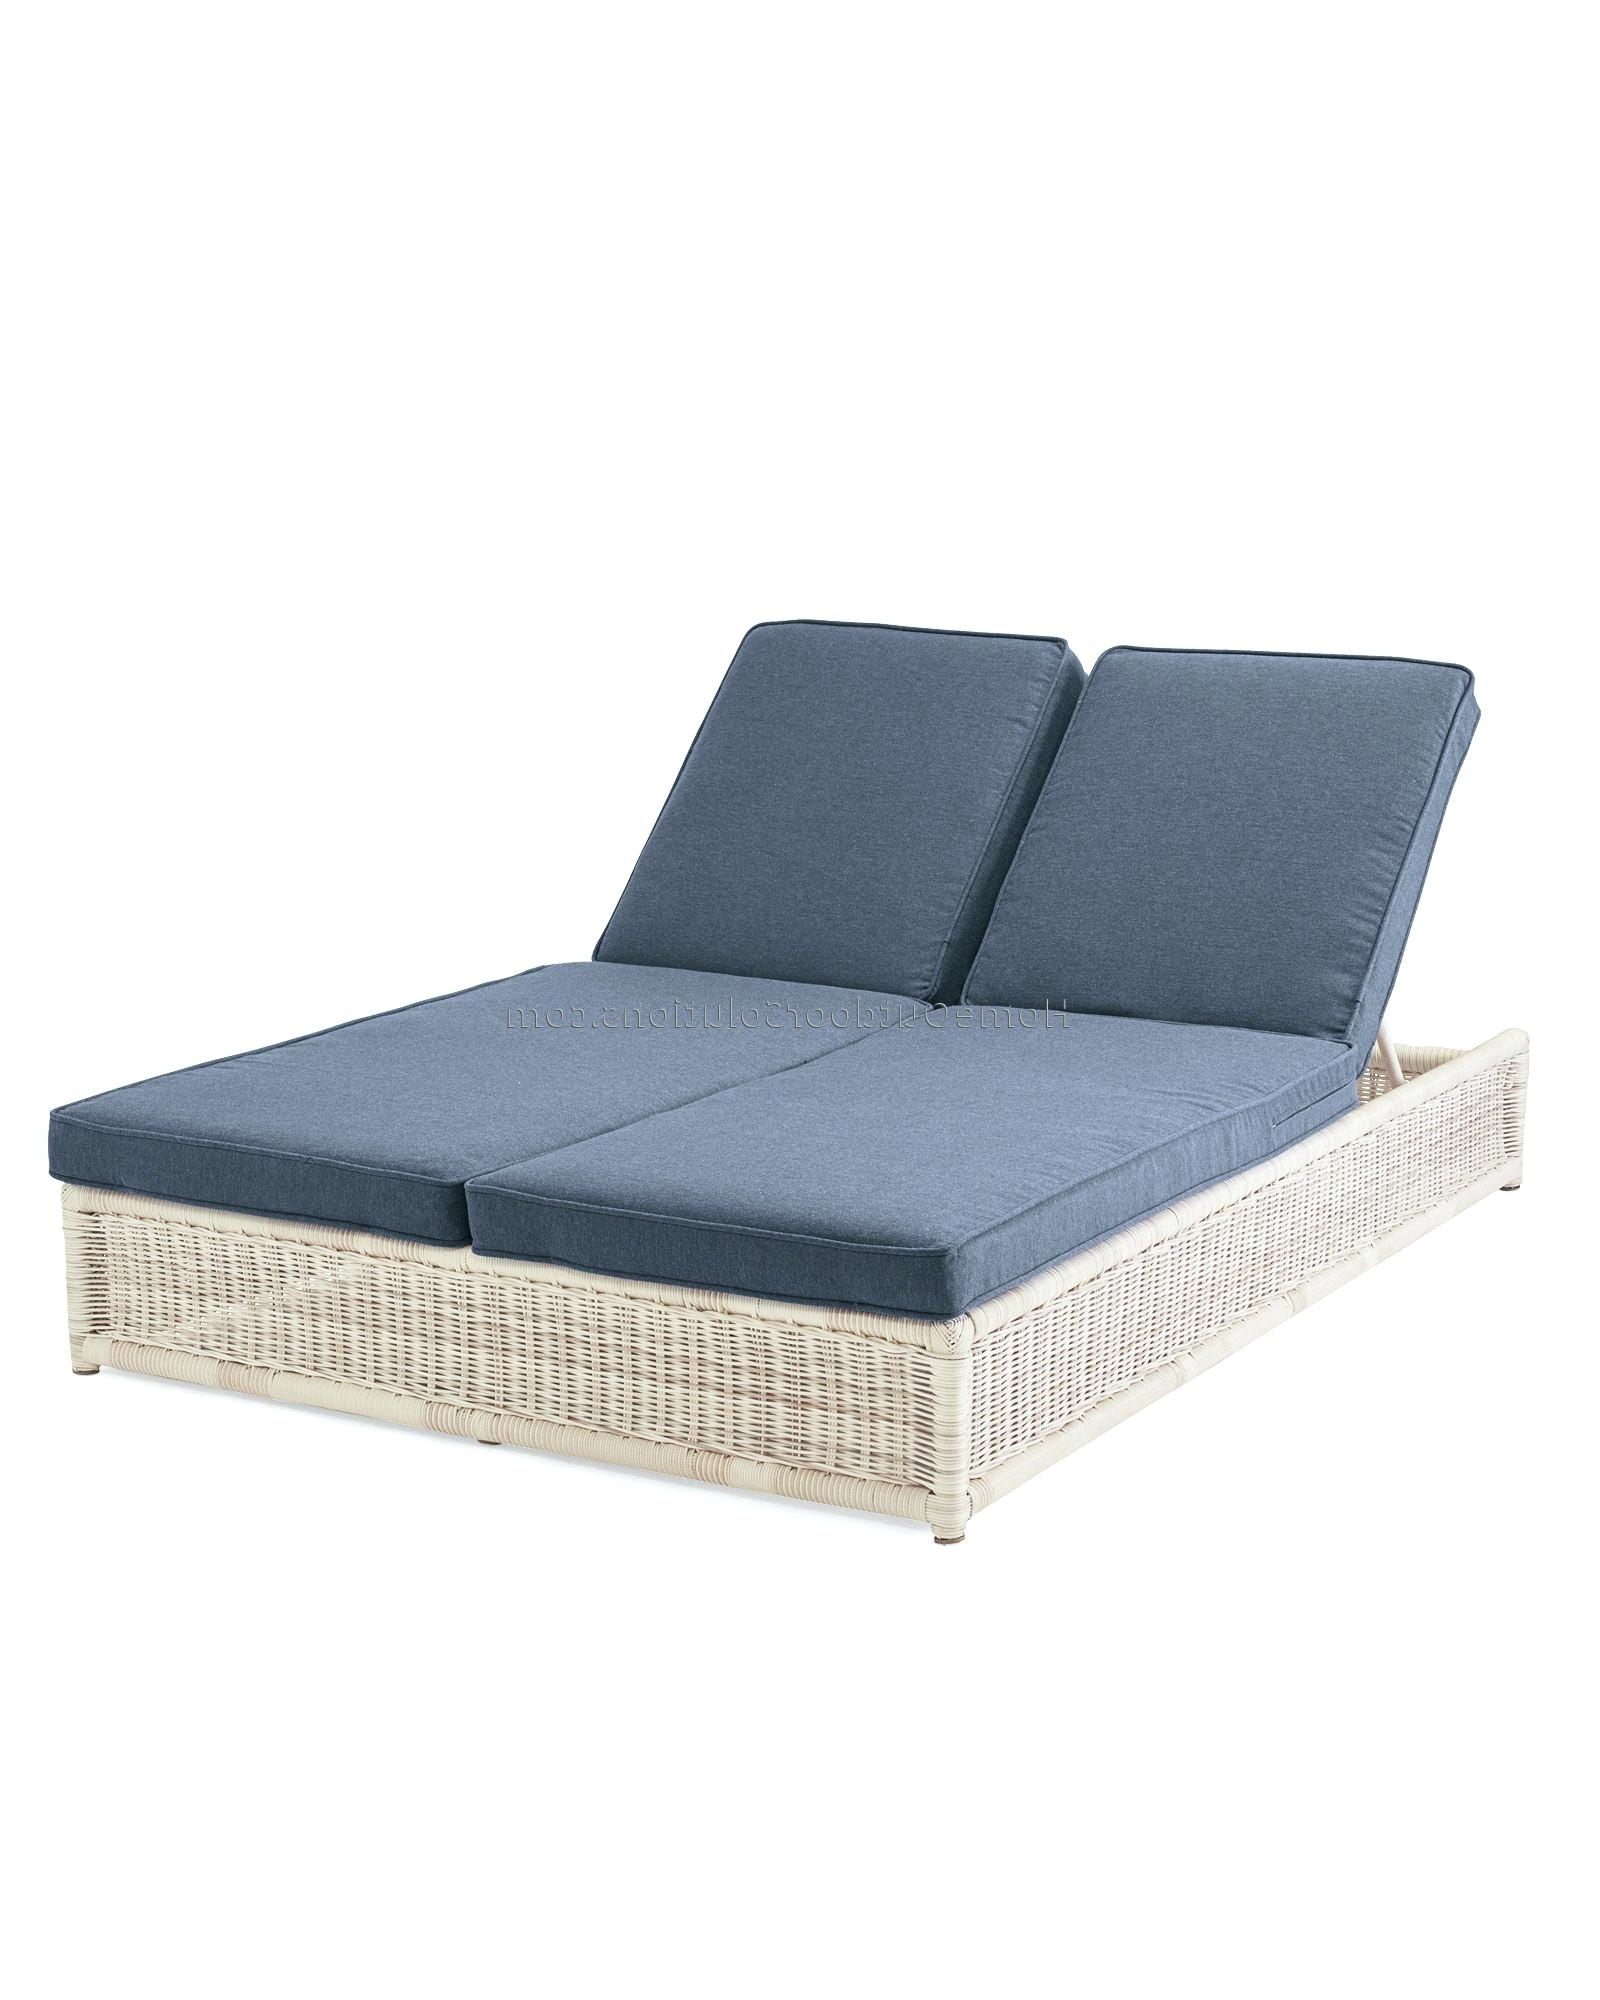 Orbit Chaise Lounges Pertaining To Preferred Orbit Chaise Lounge Replacement Cushions – Mariaalcocer (View 14 of 15)